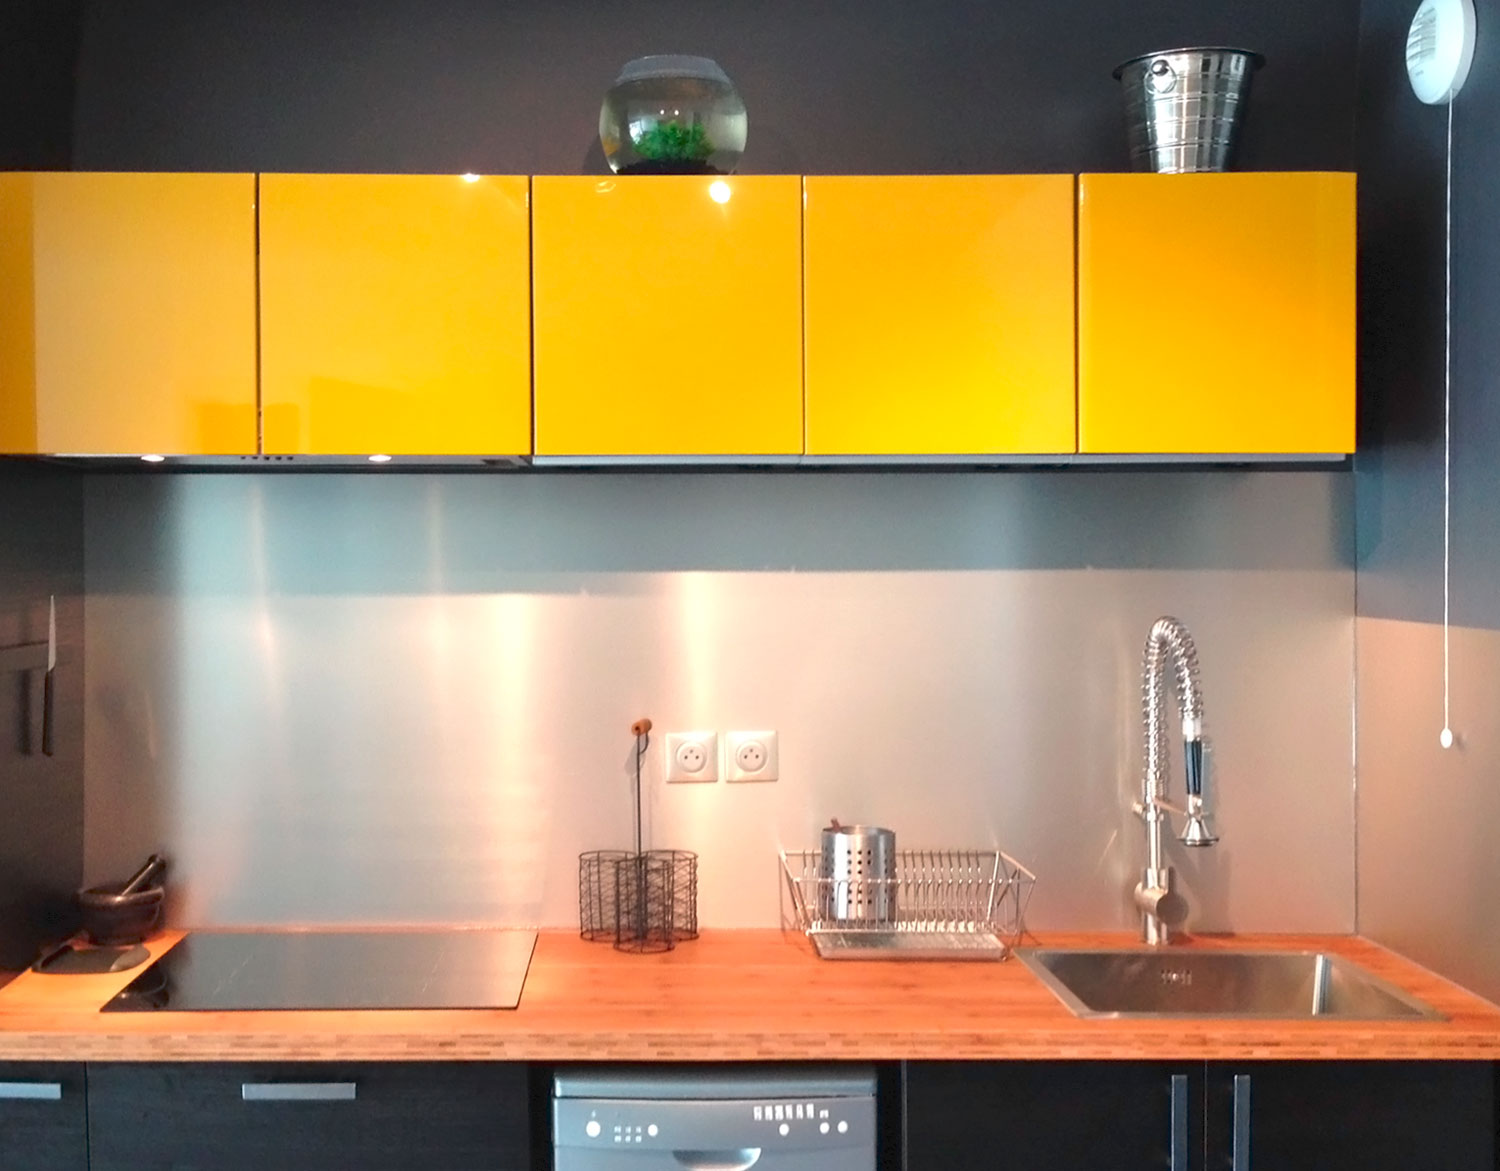 clean-stainless-steel-splashback